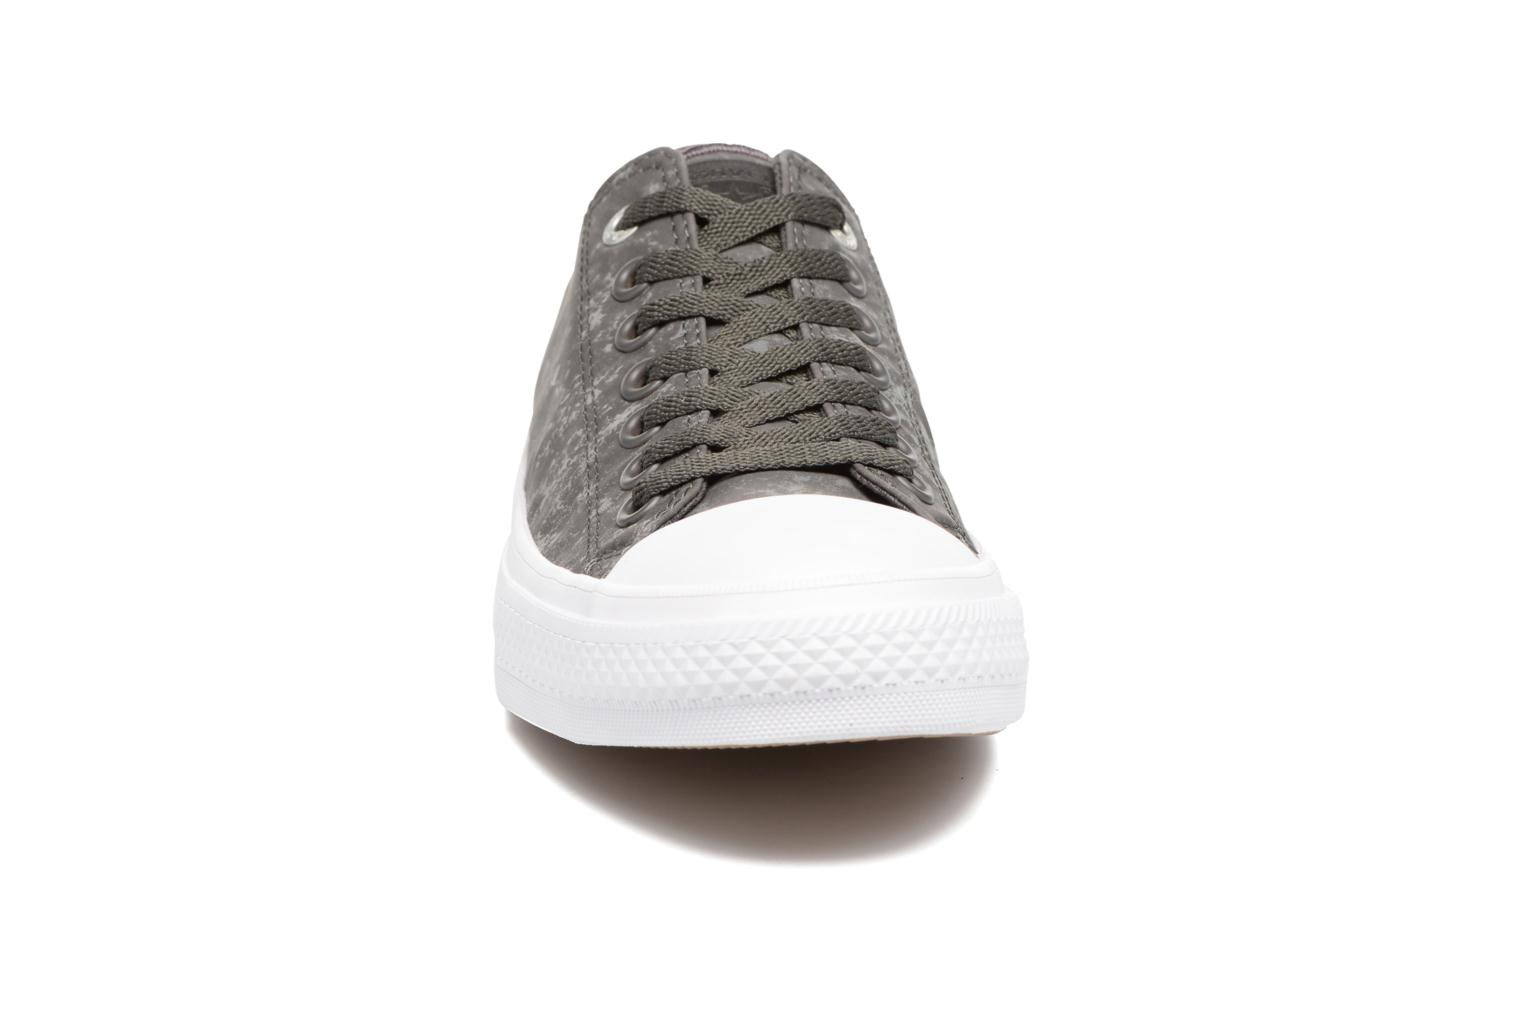 Baskets Converse Chuck Taylor All Star II Ox Reflective Wash M Gris vue portées chaussures